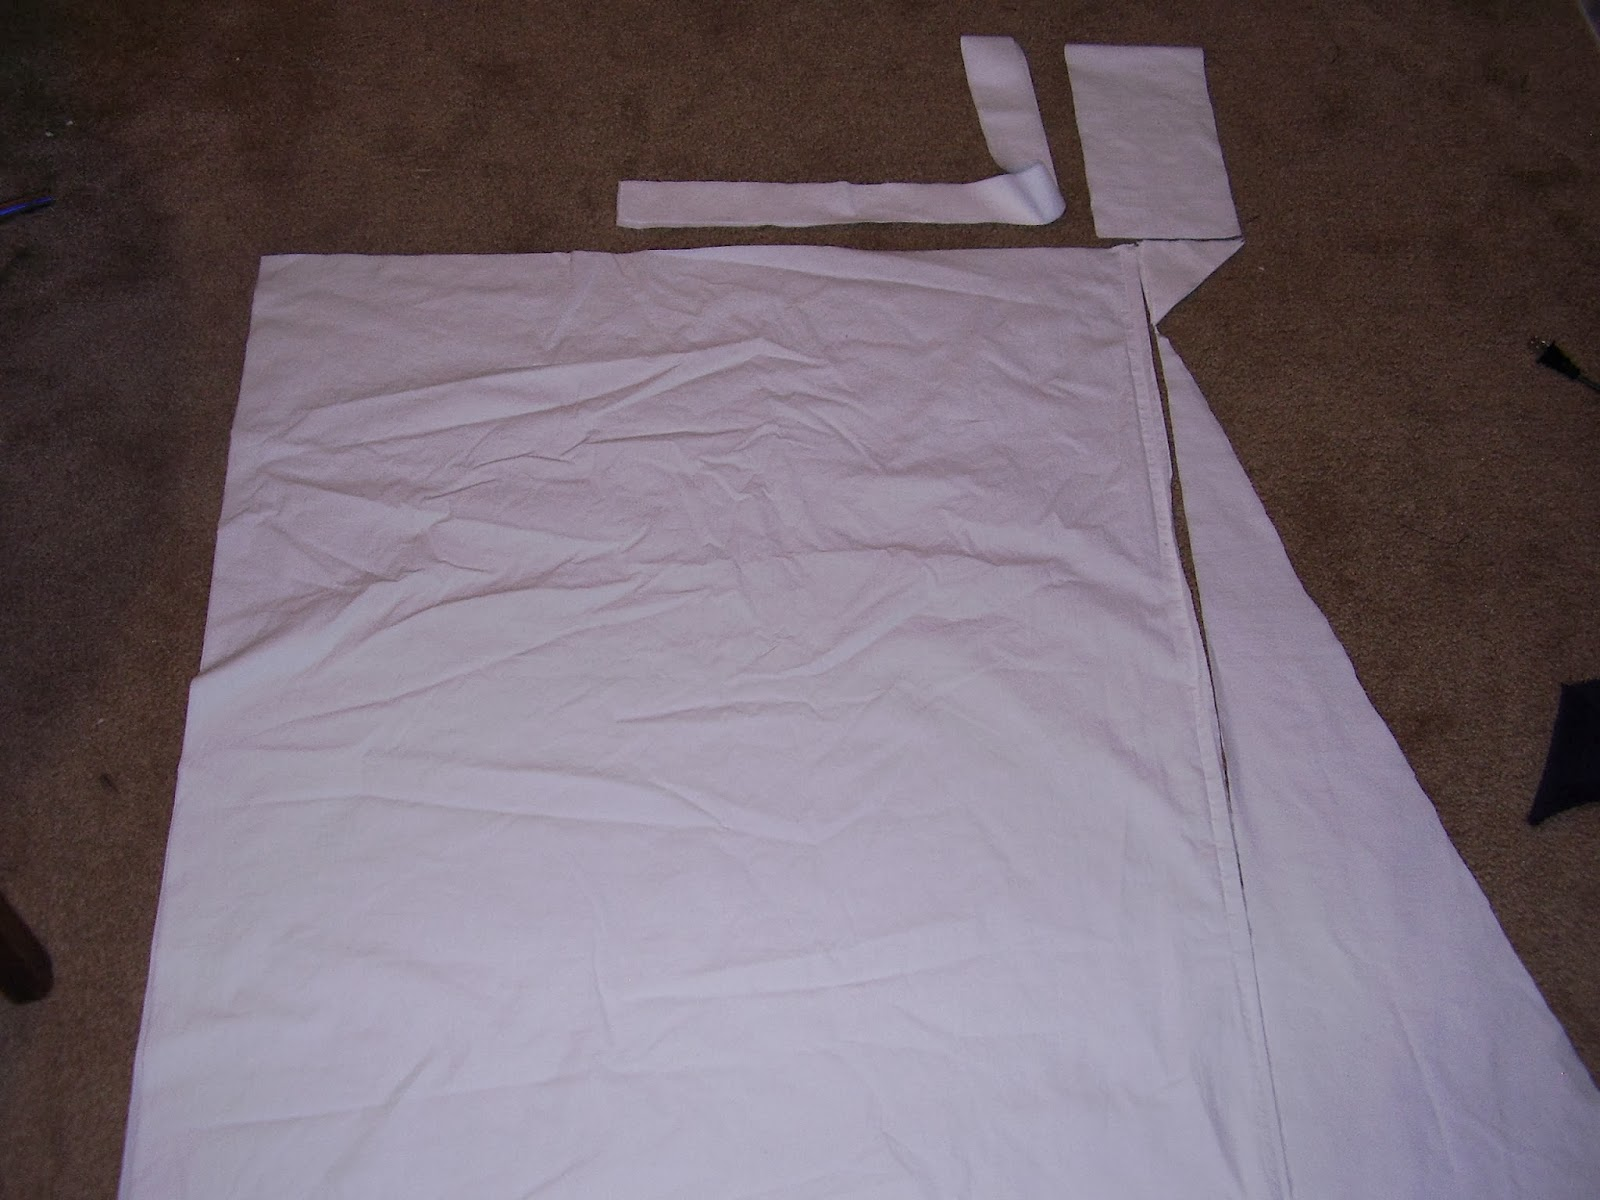 Pieces for regency chemise.